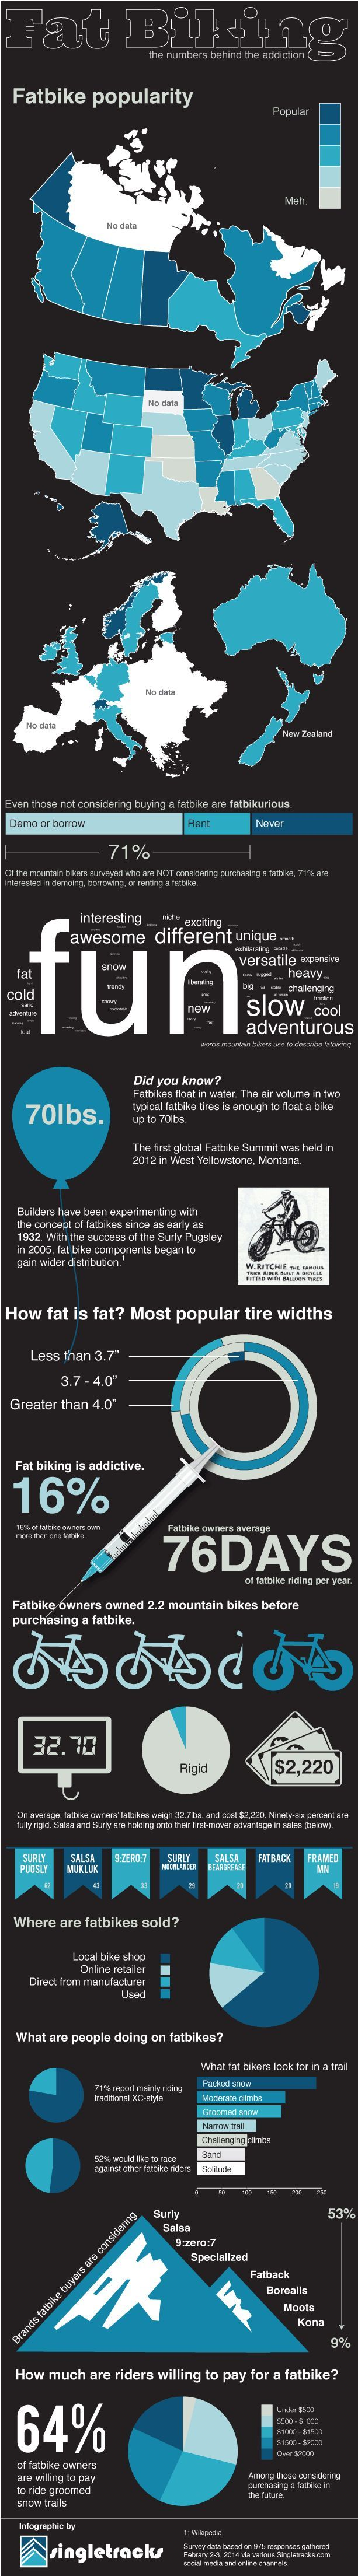 A fun infographic with some interesting facts about the growing popularity of fat bikes. #fatbike #bicycle